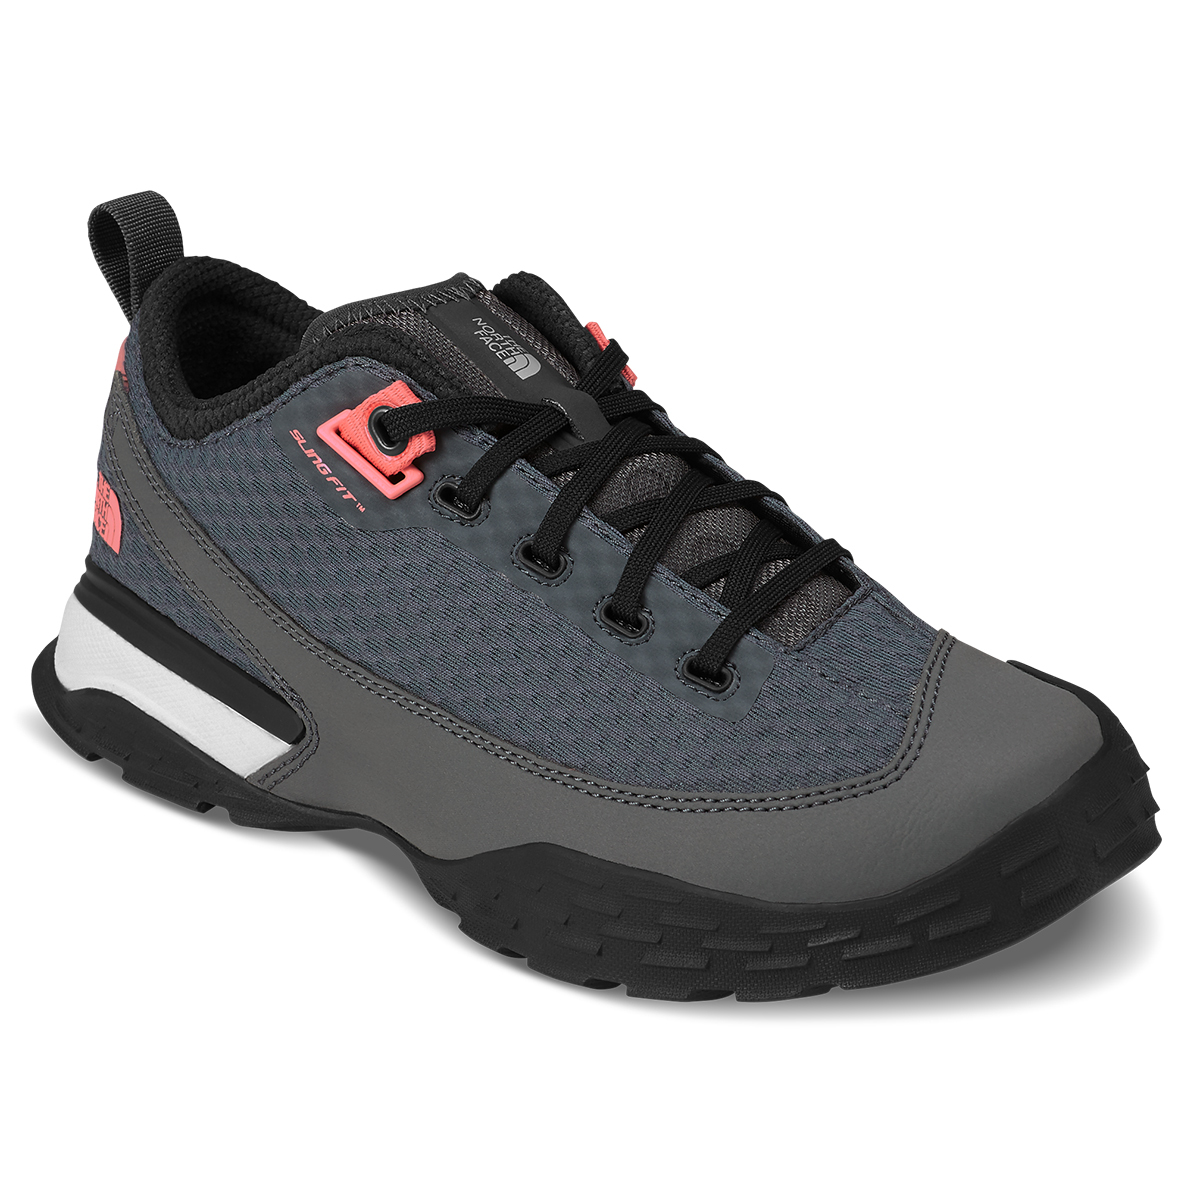 The North Face Women's One Trail Low Hiking Shoes - Black, 6.5